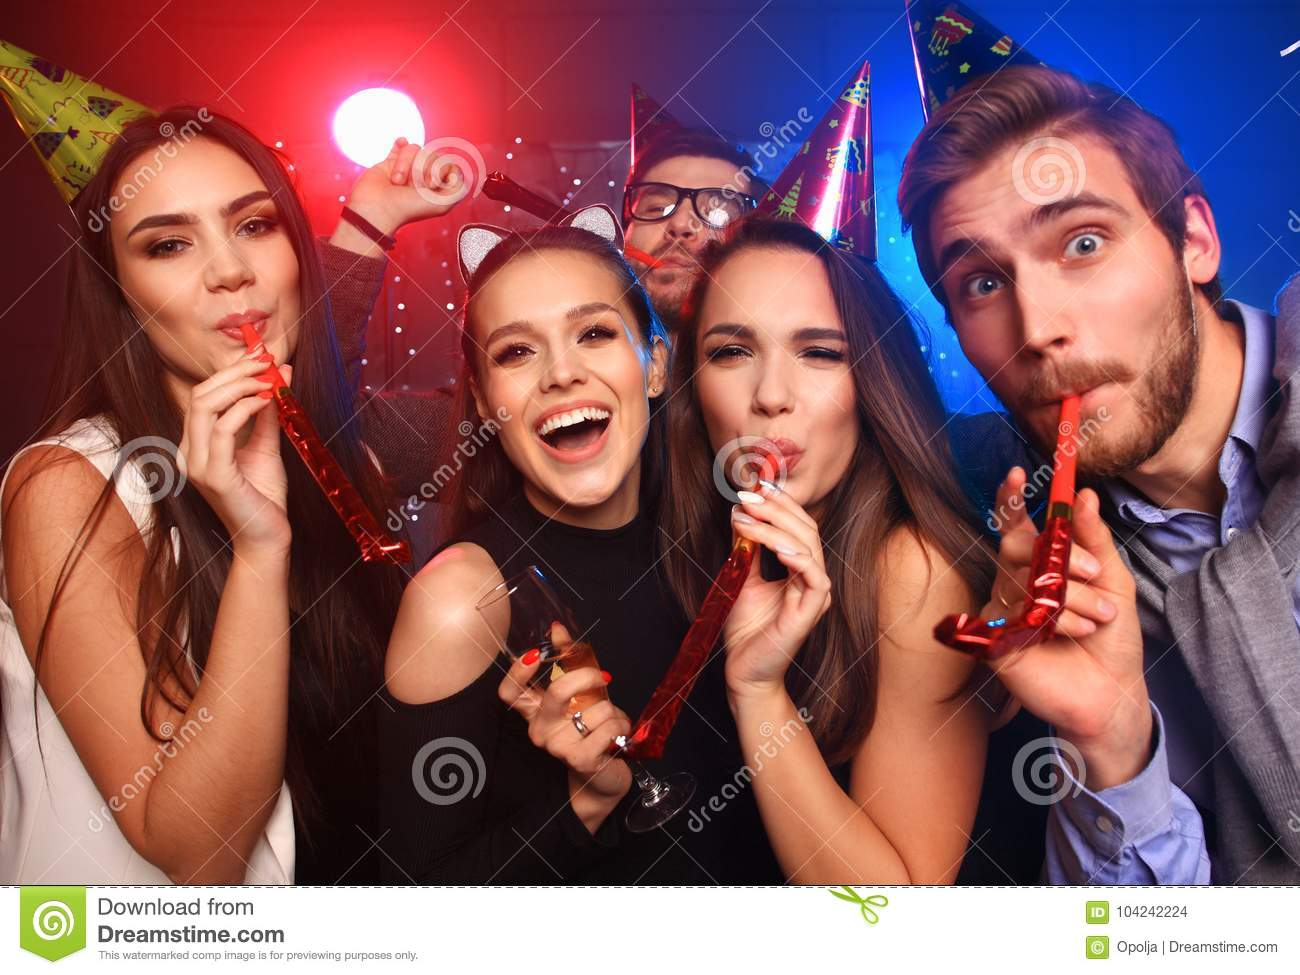 Friends making big party in the night. Five people throwing confetti and drinking champagne.